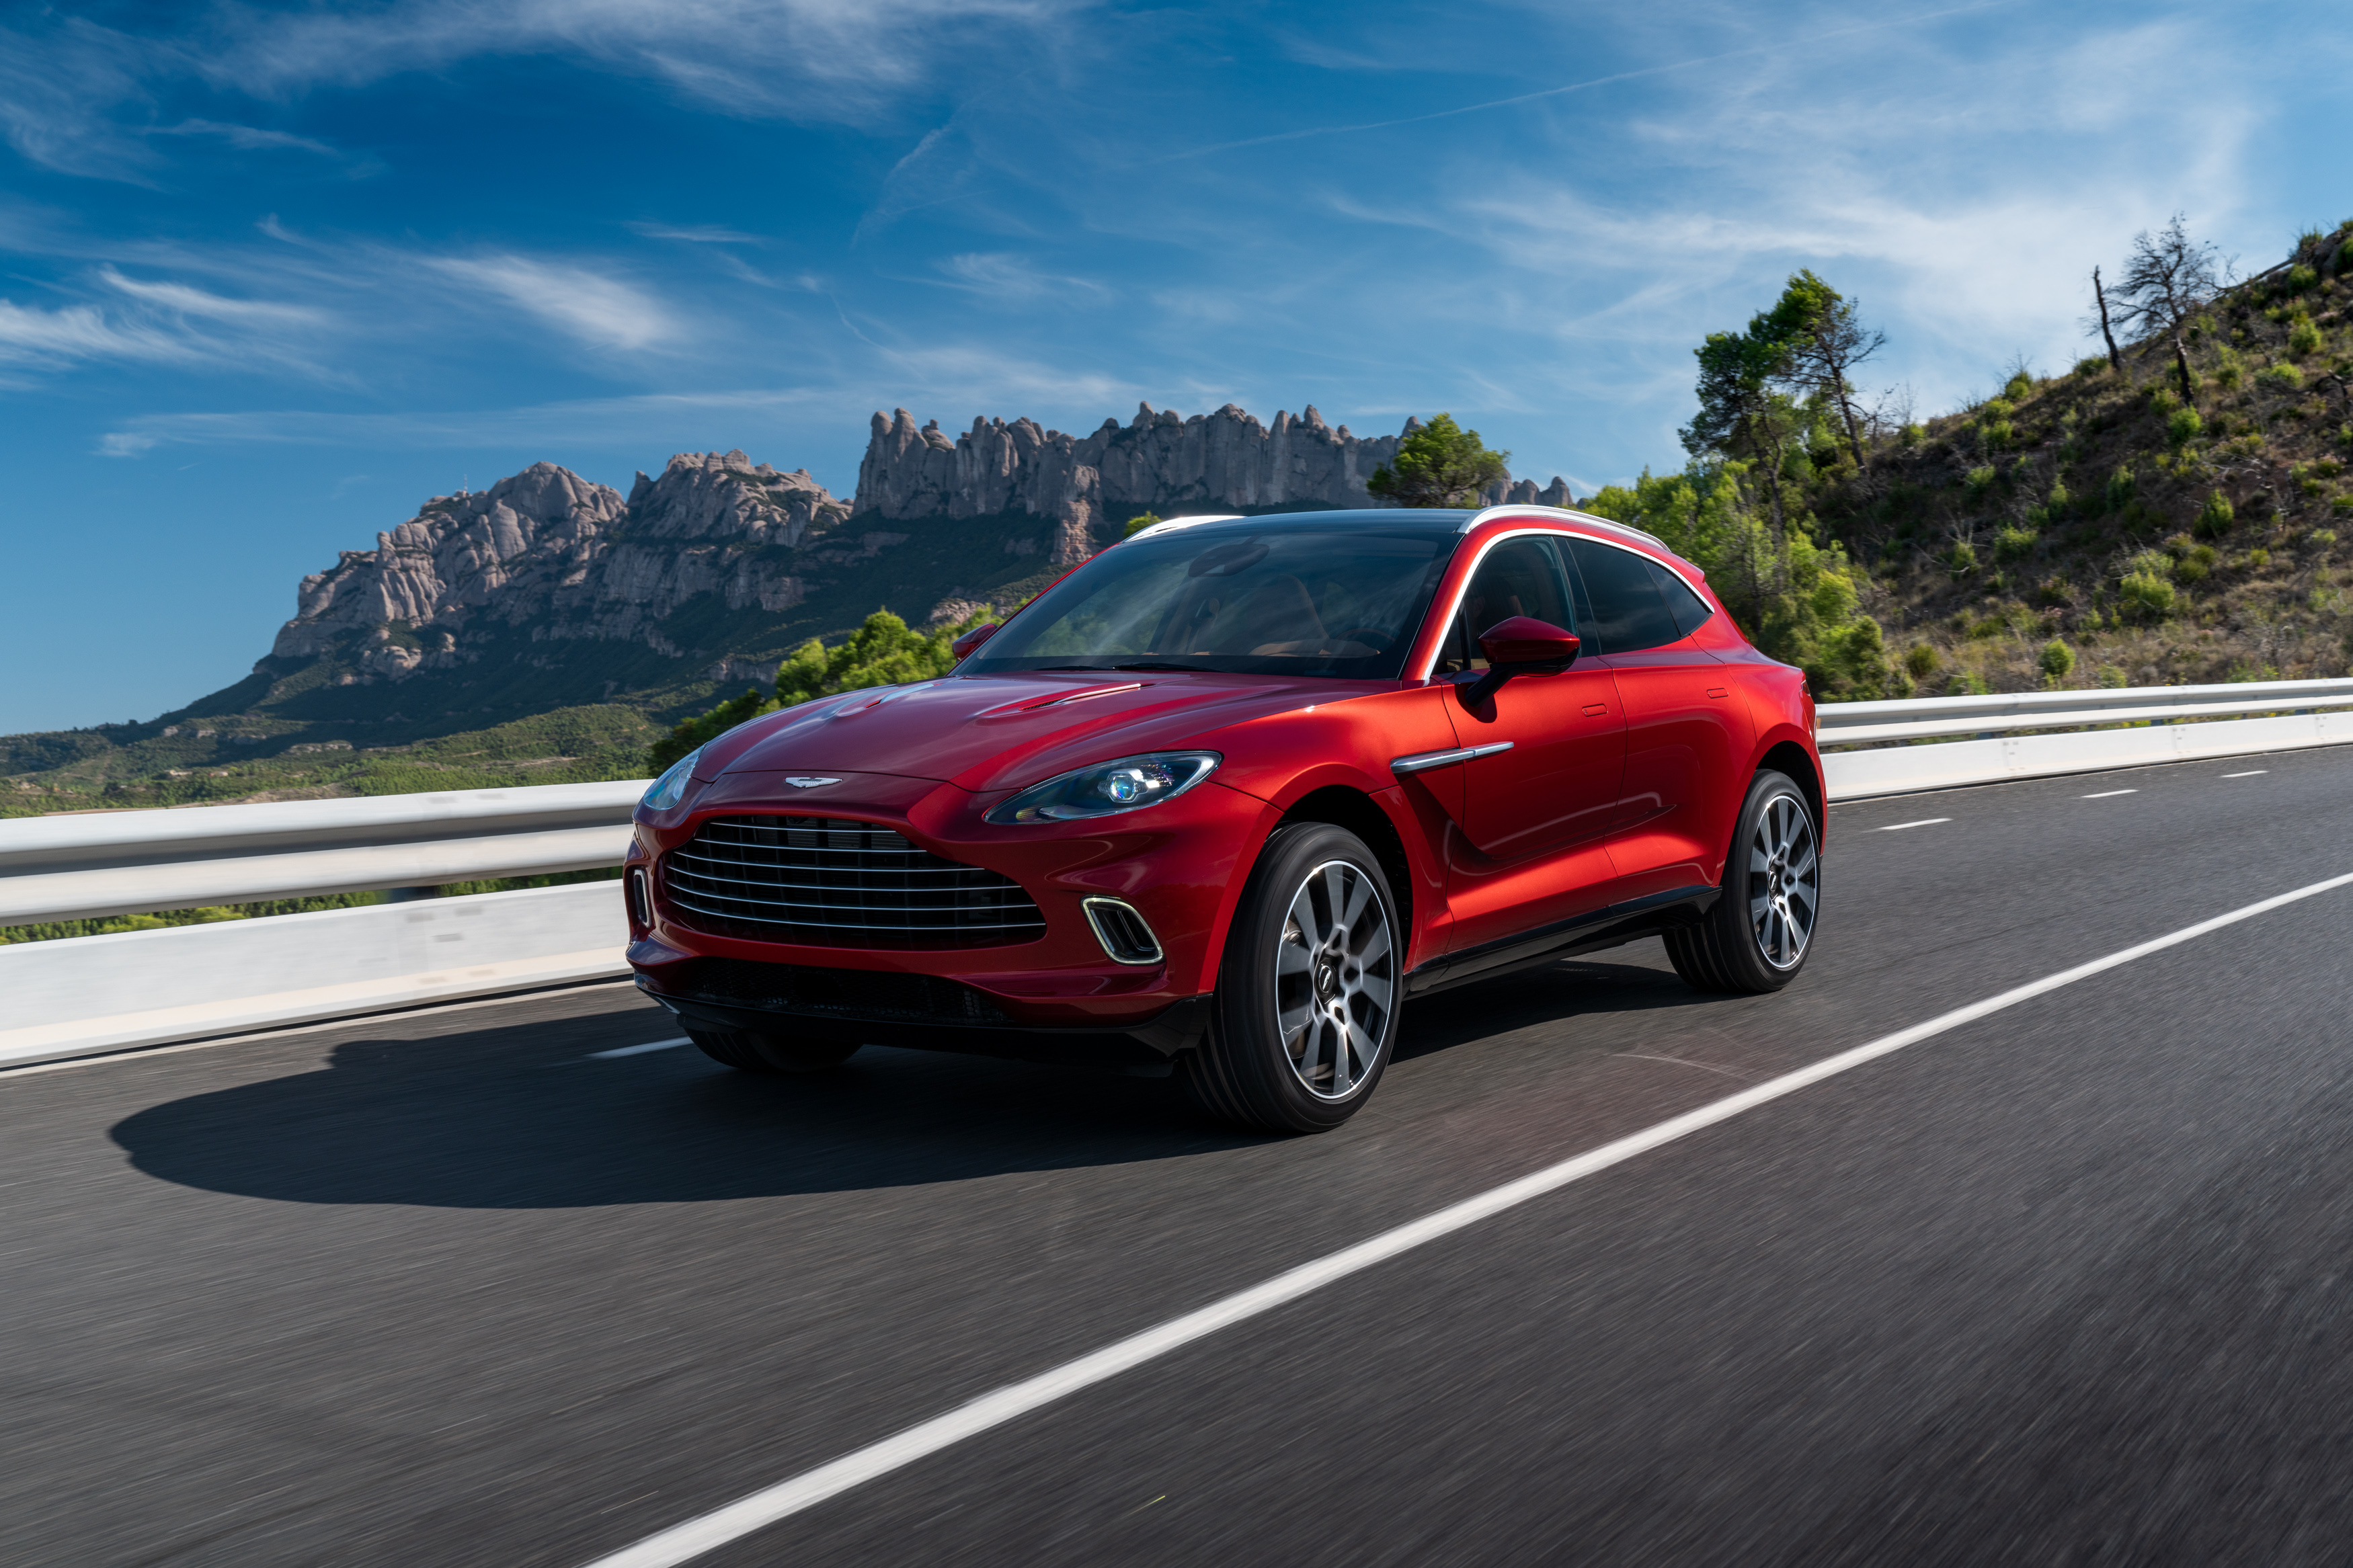 Aston Martin Dbx Latest News Reviews Specifications Prices Photos And Videos Top Speed